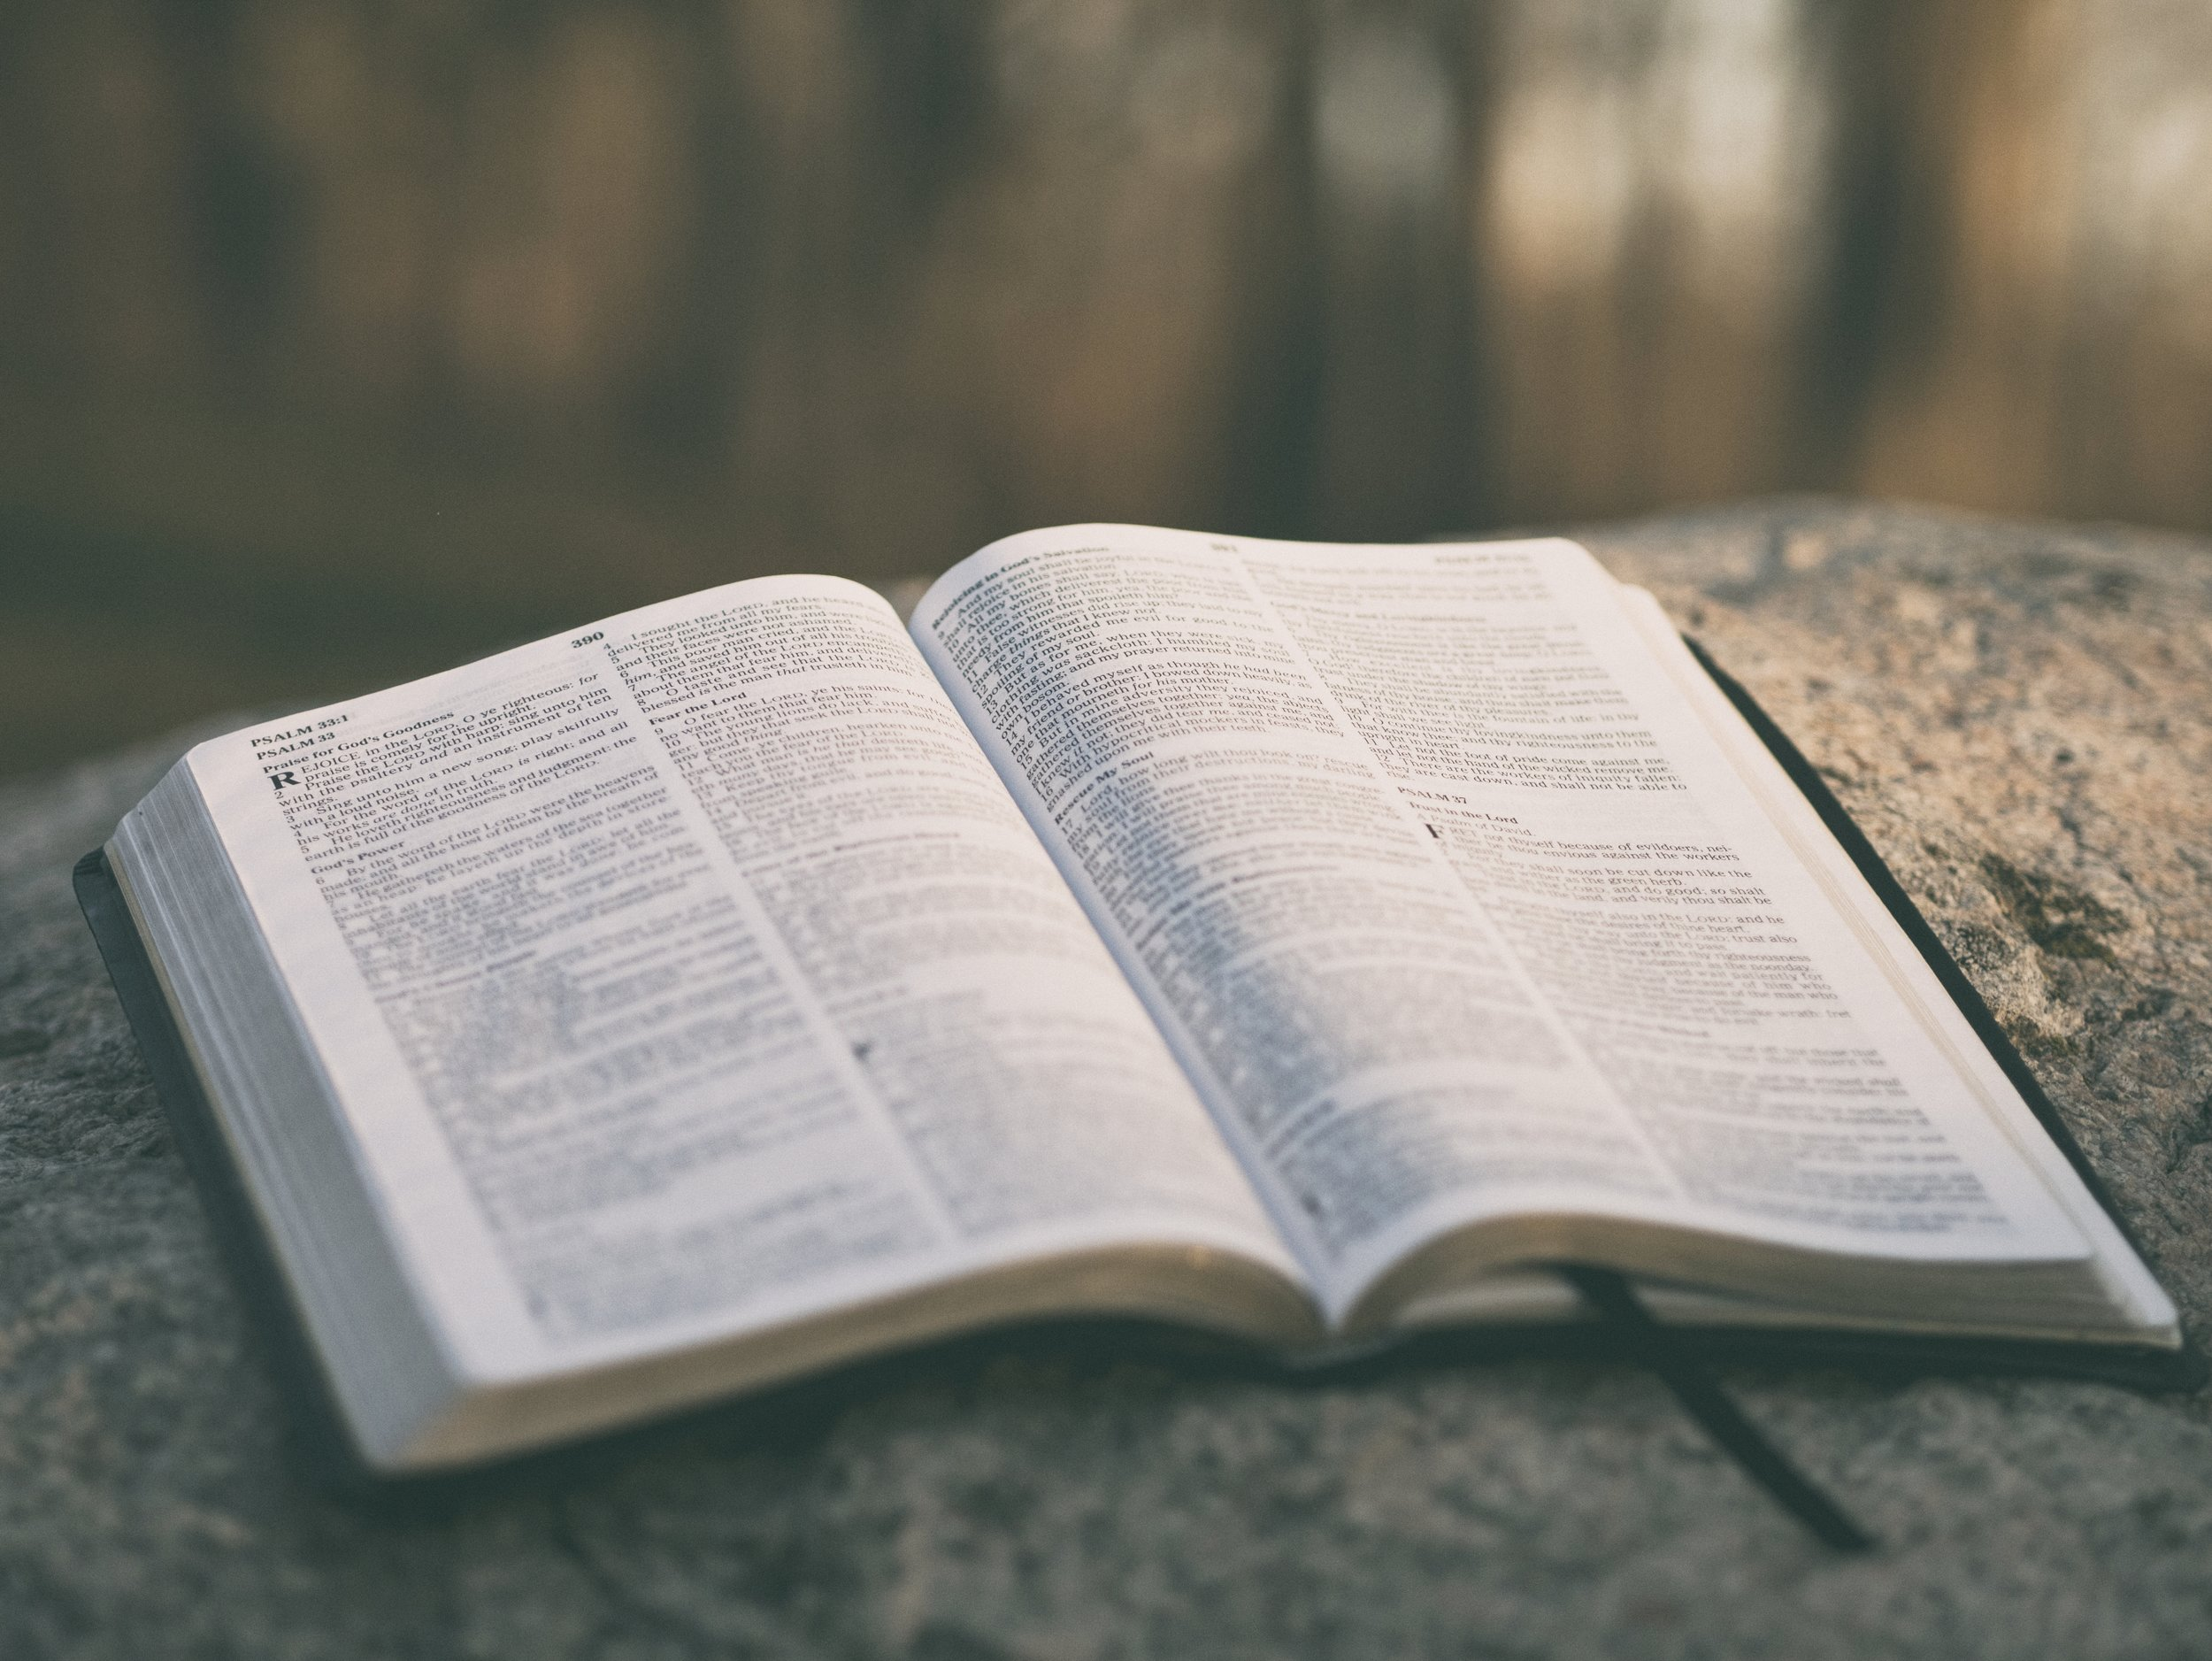 Scripture speaks. - Everything we do involves the faithful preaching and teaching of the Scriptures. We believe God intends to form us and shape us through His Word.